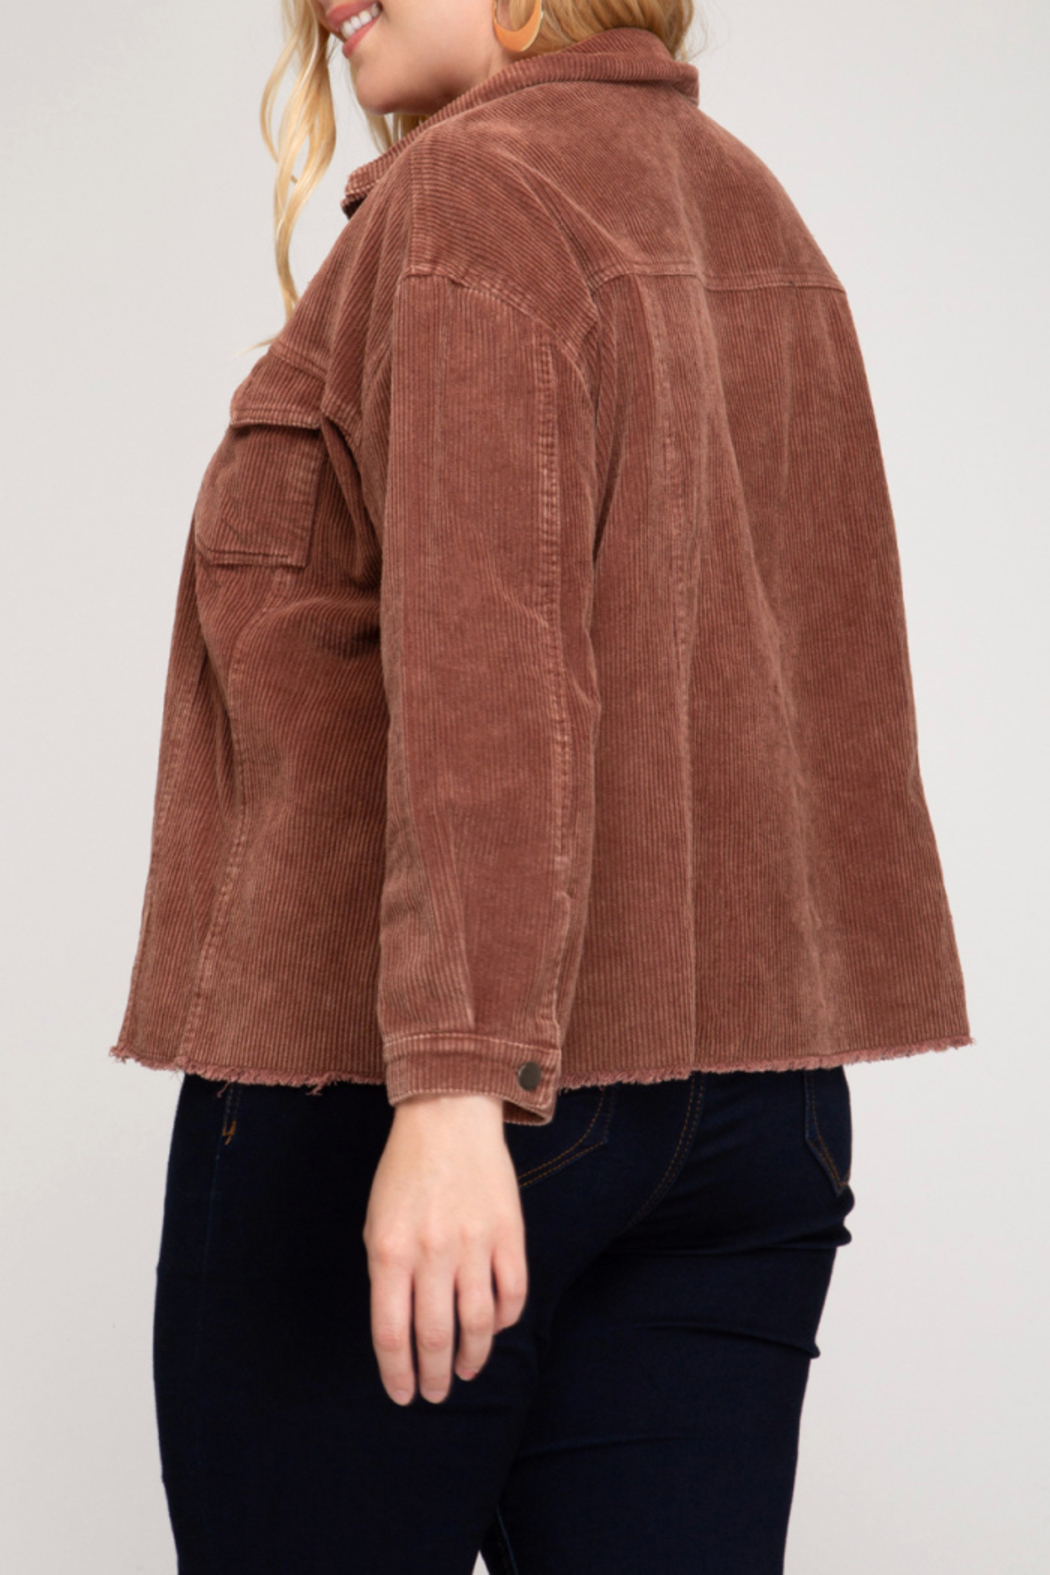 She + Sky Mineral Washed Corduroy Jacket Curvy - Front Full Image